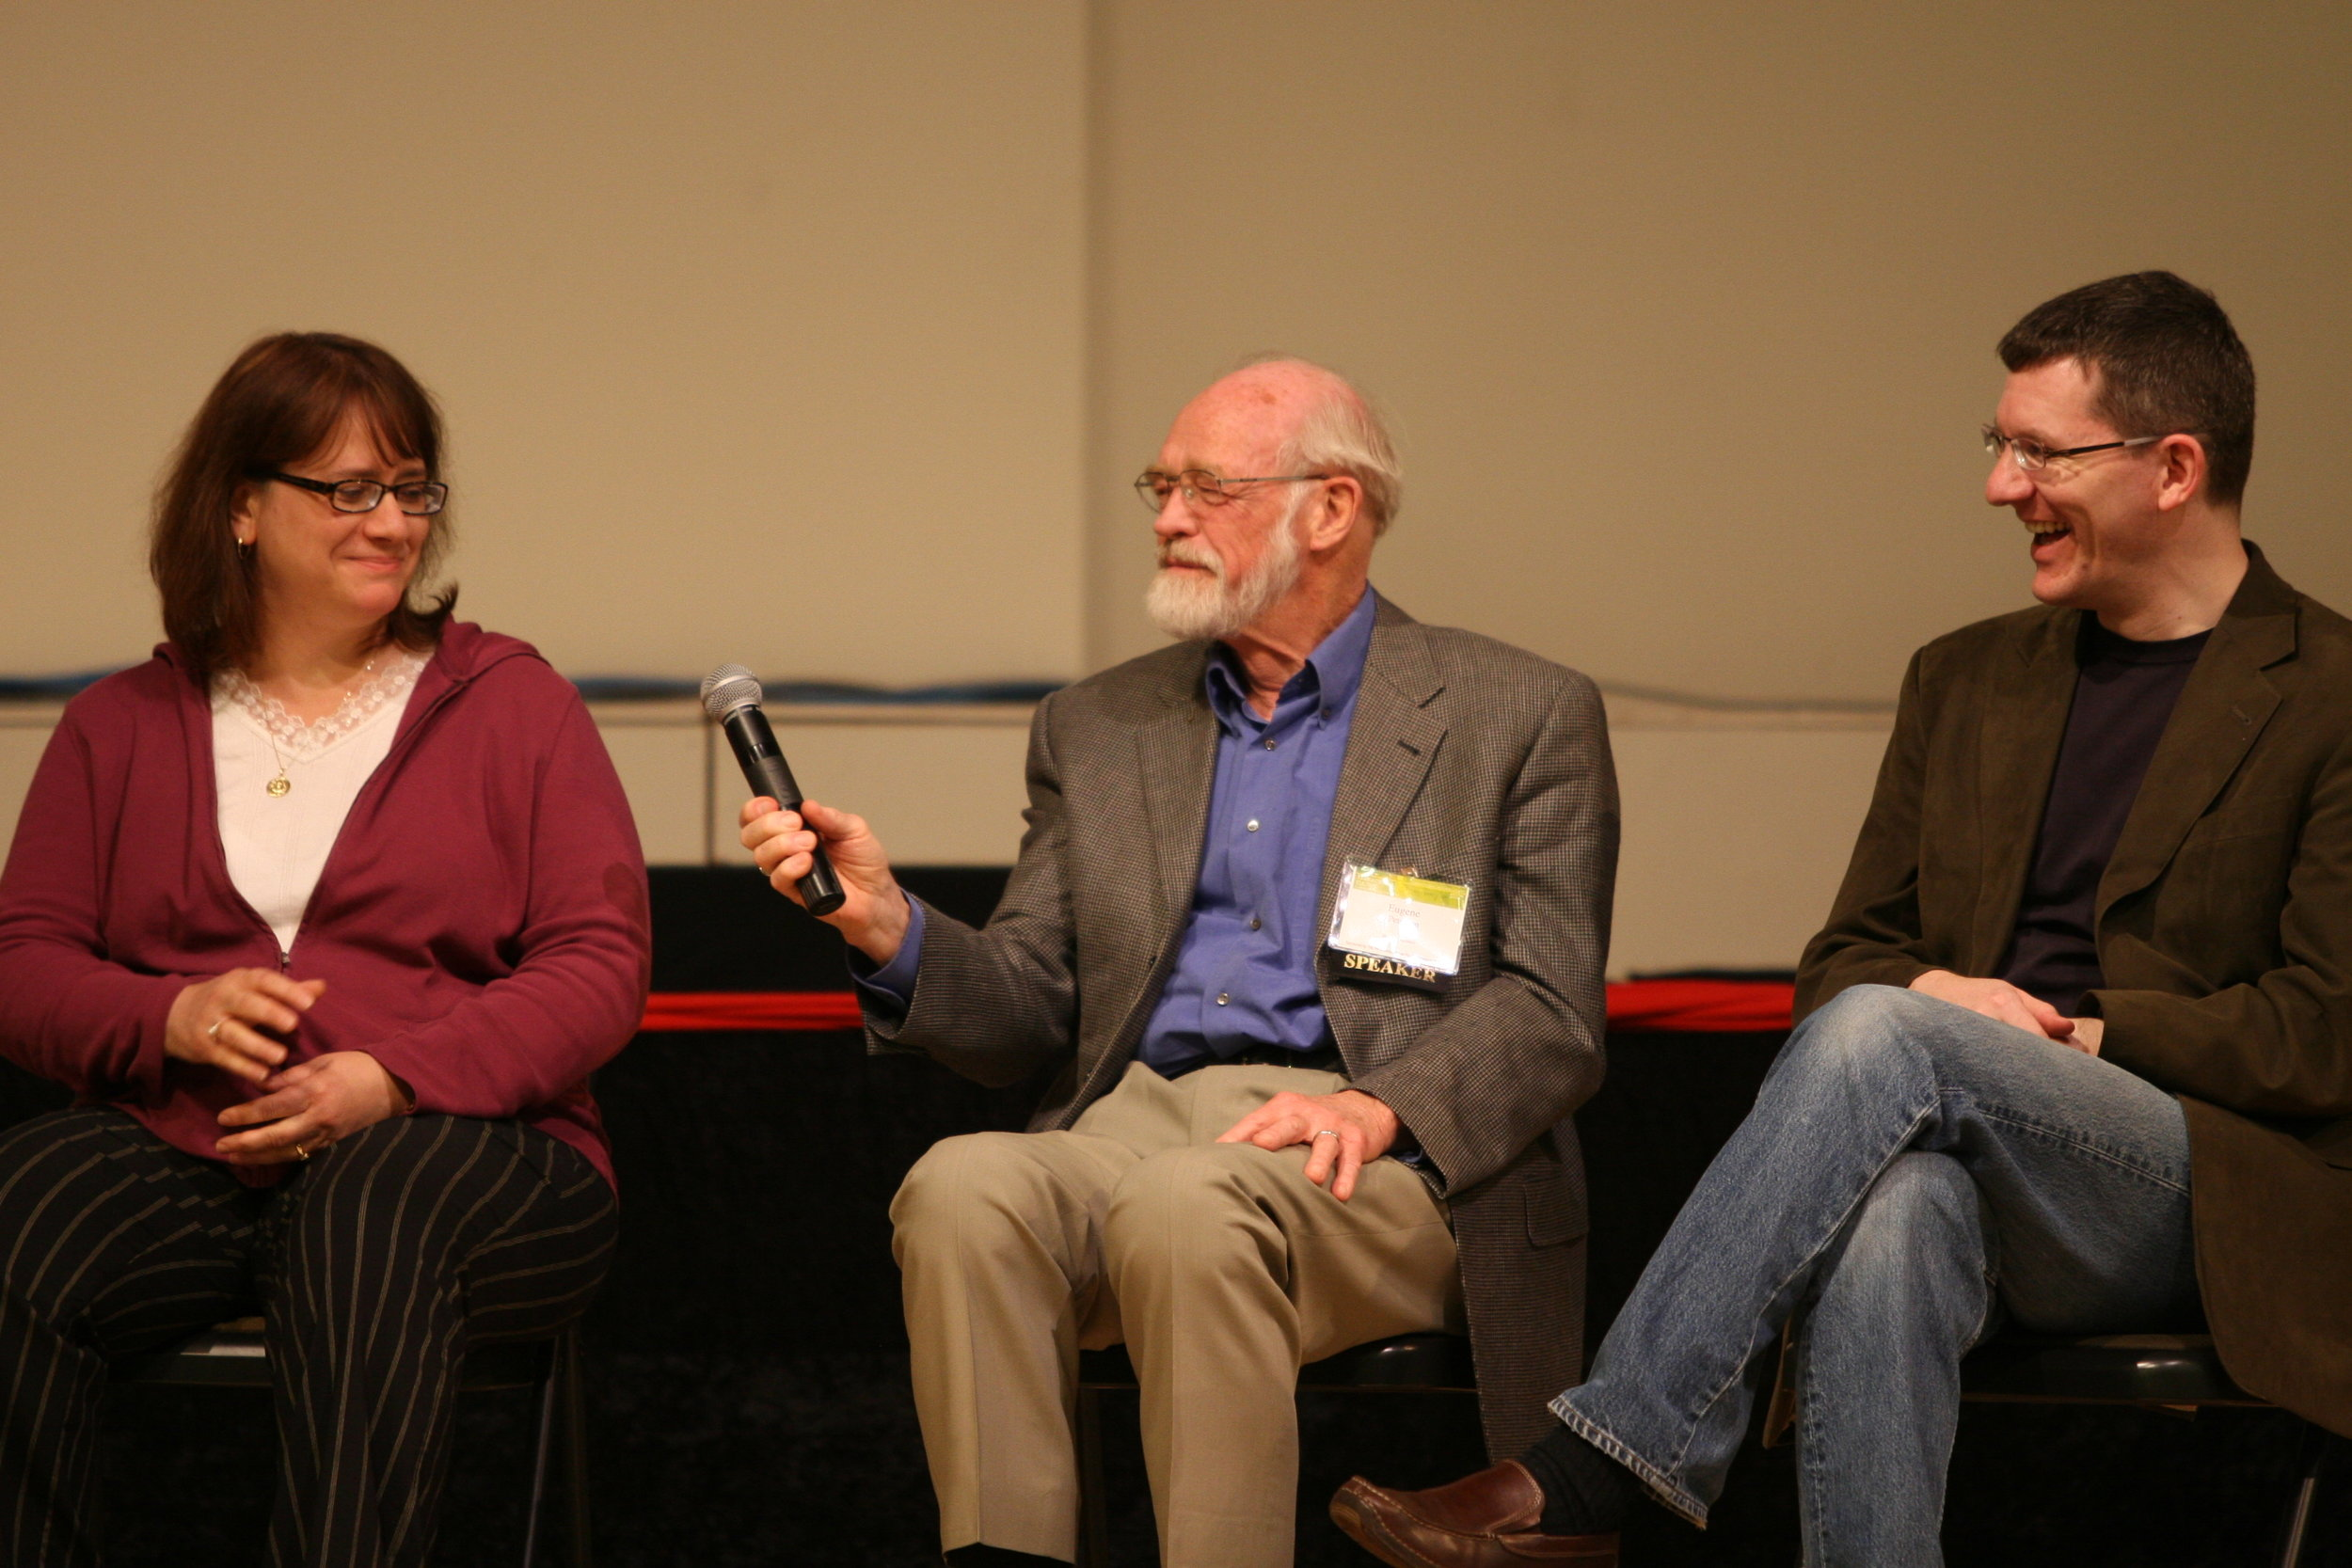 Barbara Nicolosi, Eugene Peterson, and Andy Crouch in a panel discussion at the Transforming Culture conference.